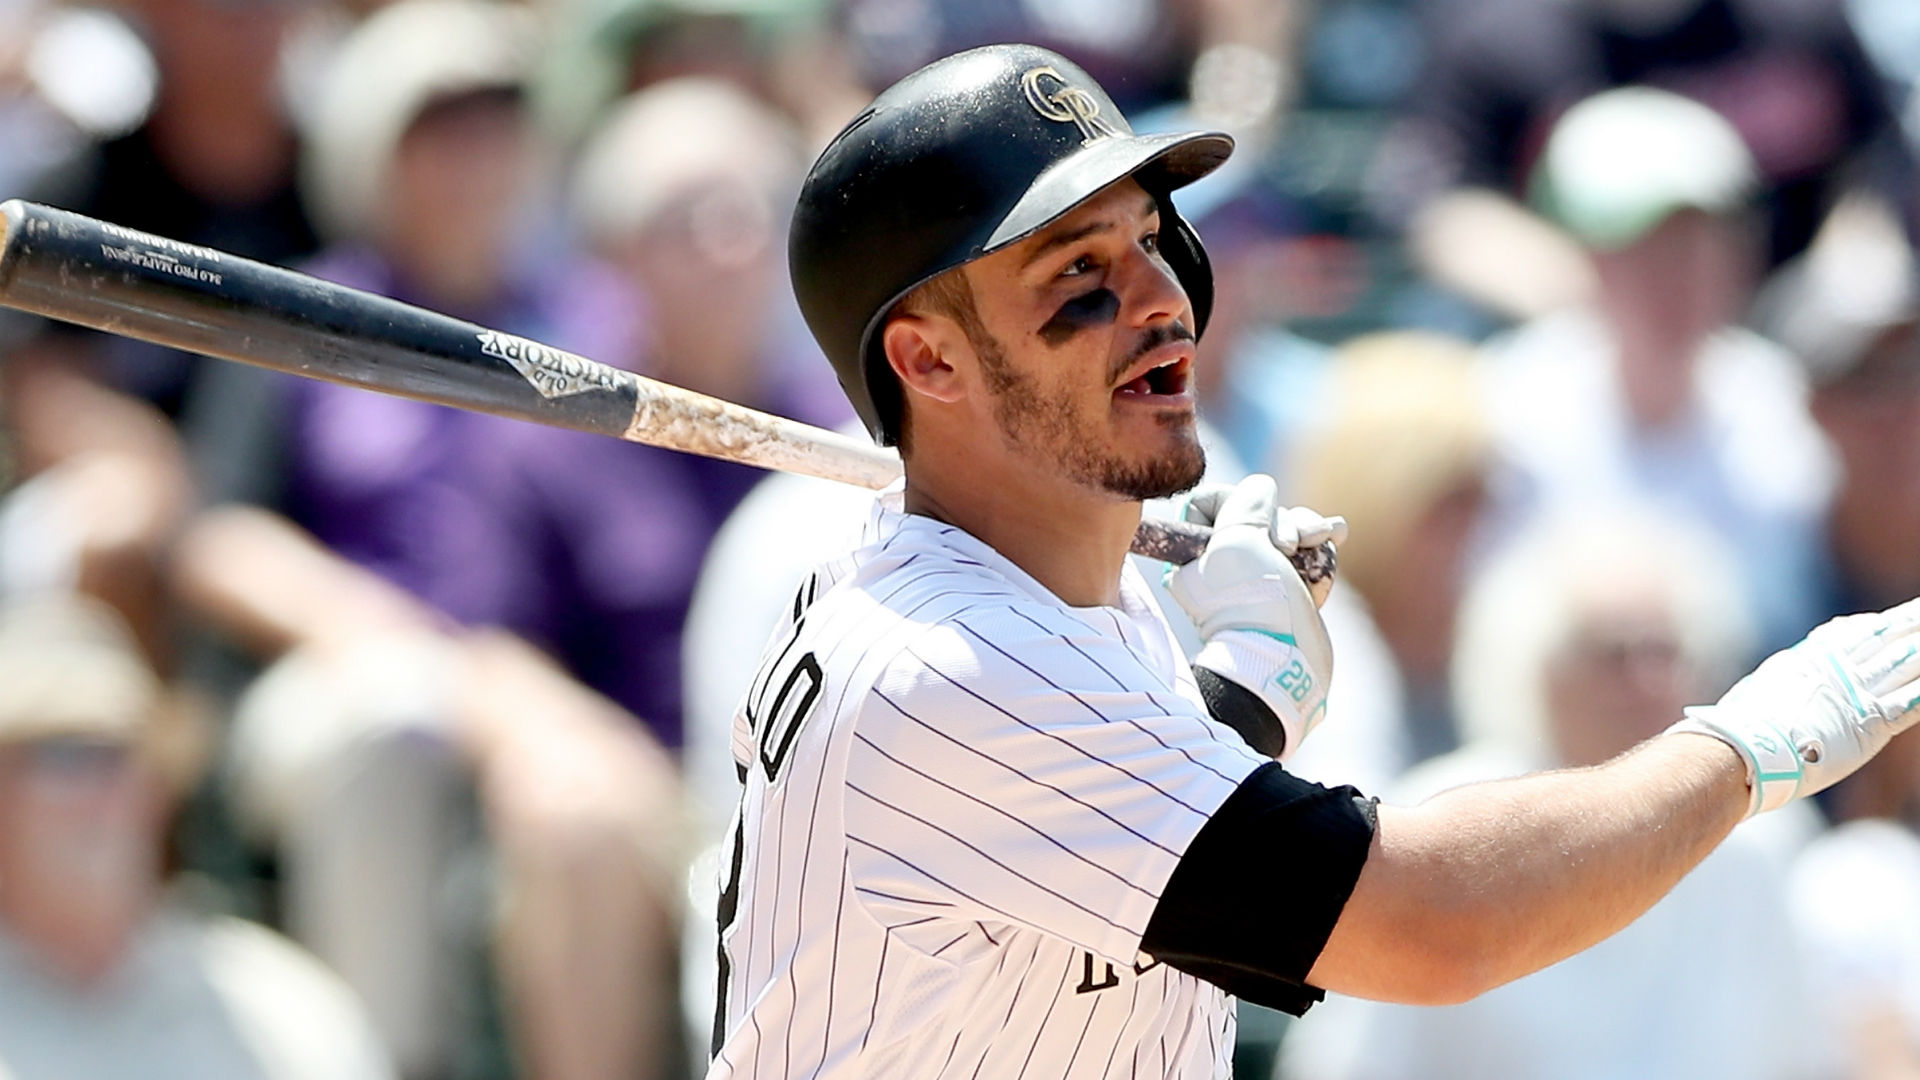 Nolan Arenado completes cycle with walk-off homer to beat Giants